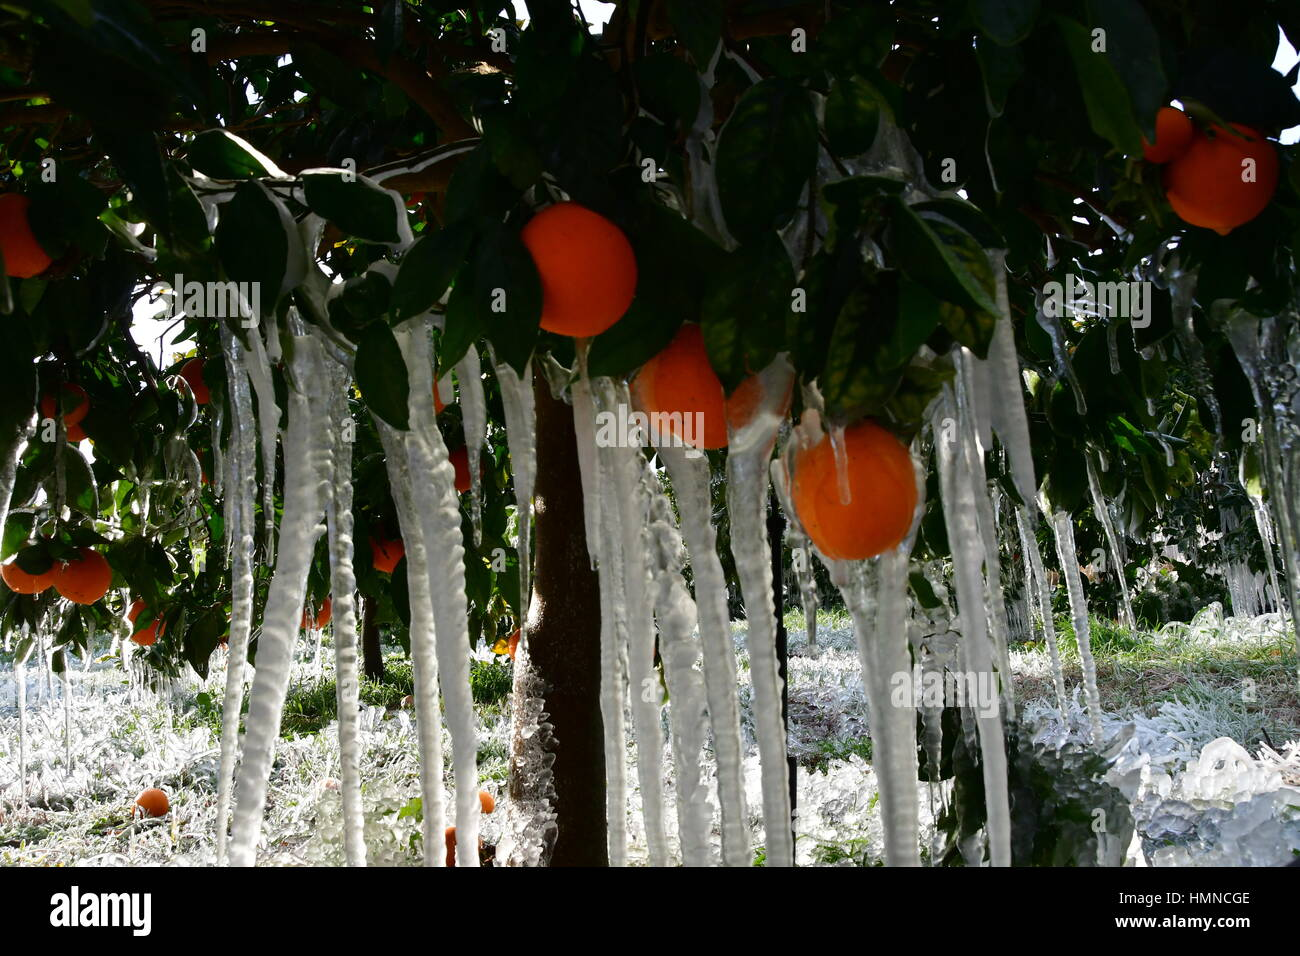 Greece everything froze in the city area of Argos Argolis, Southwestern Peloponnese, the temperature reached at - Stock Image